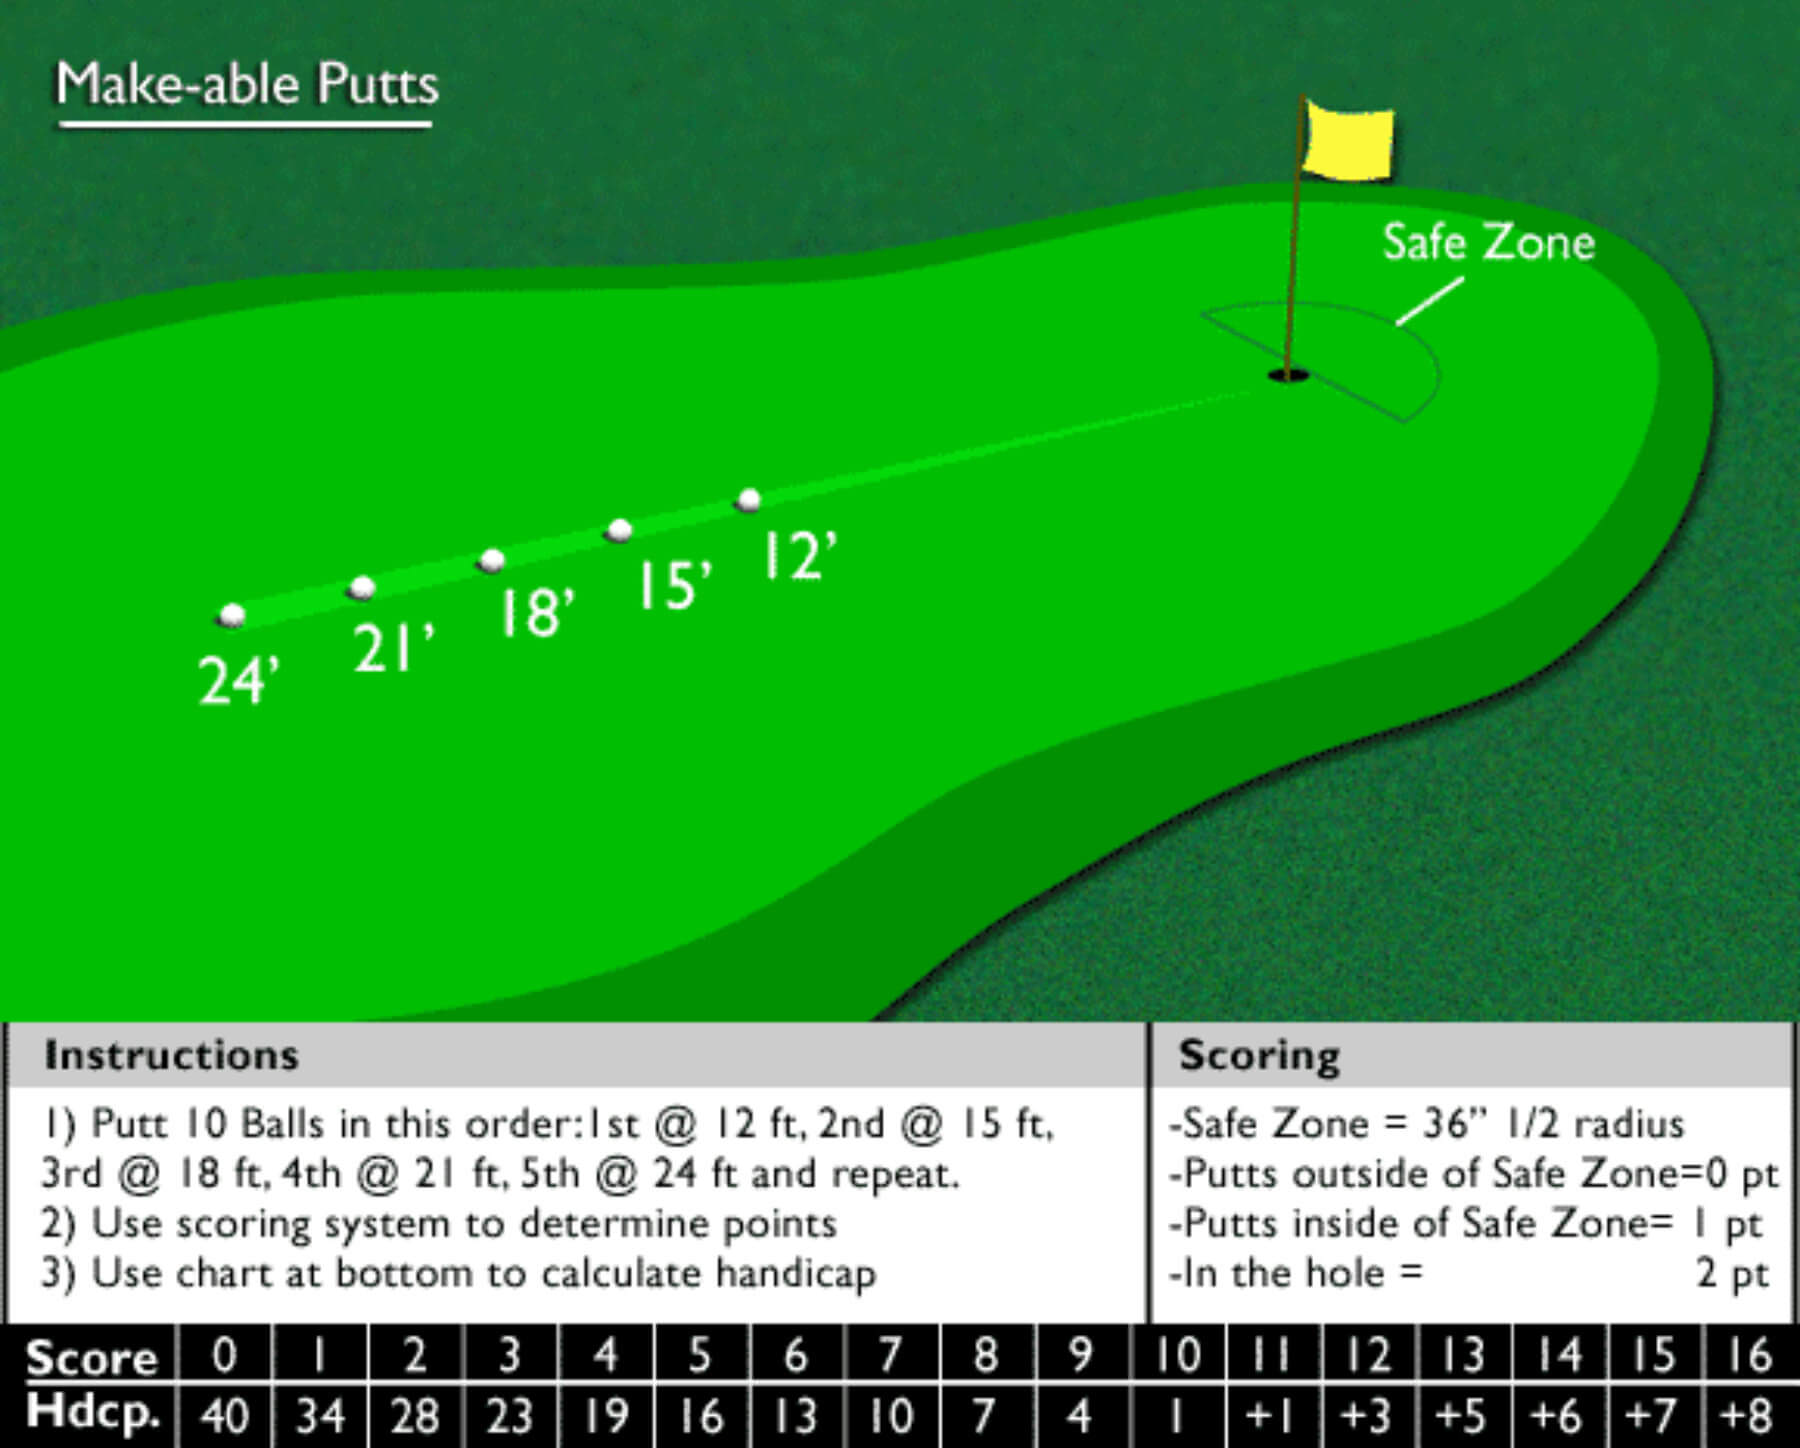 Make-able putts